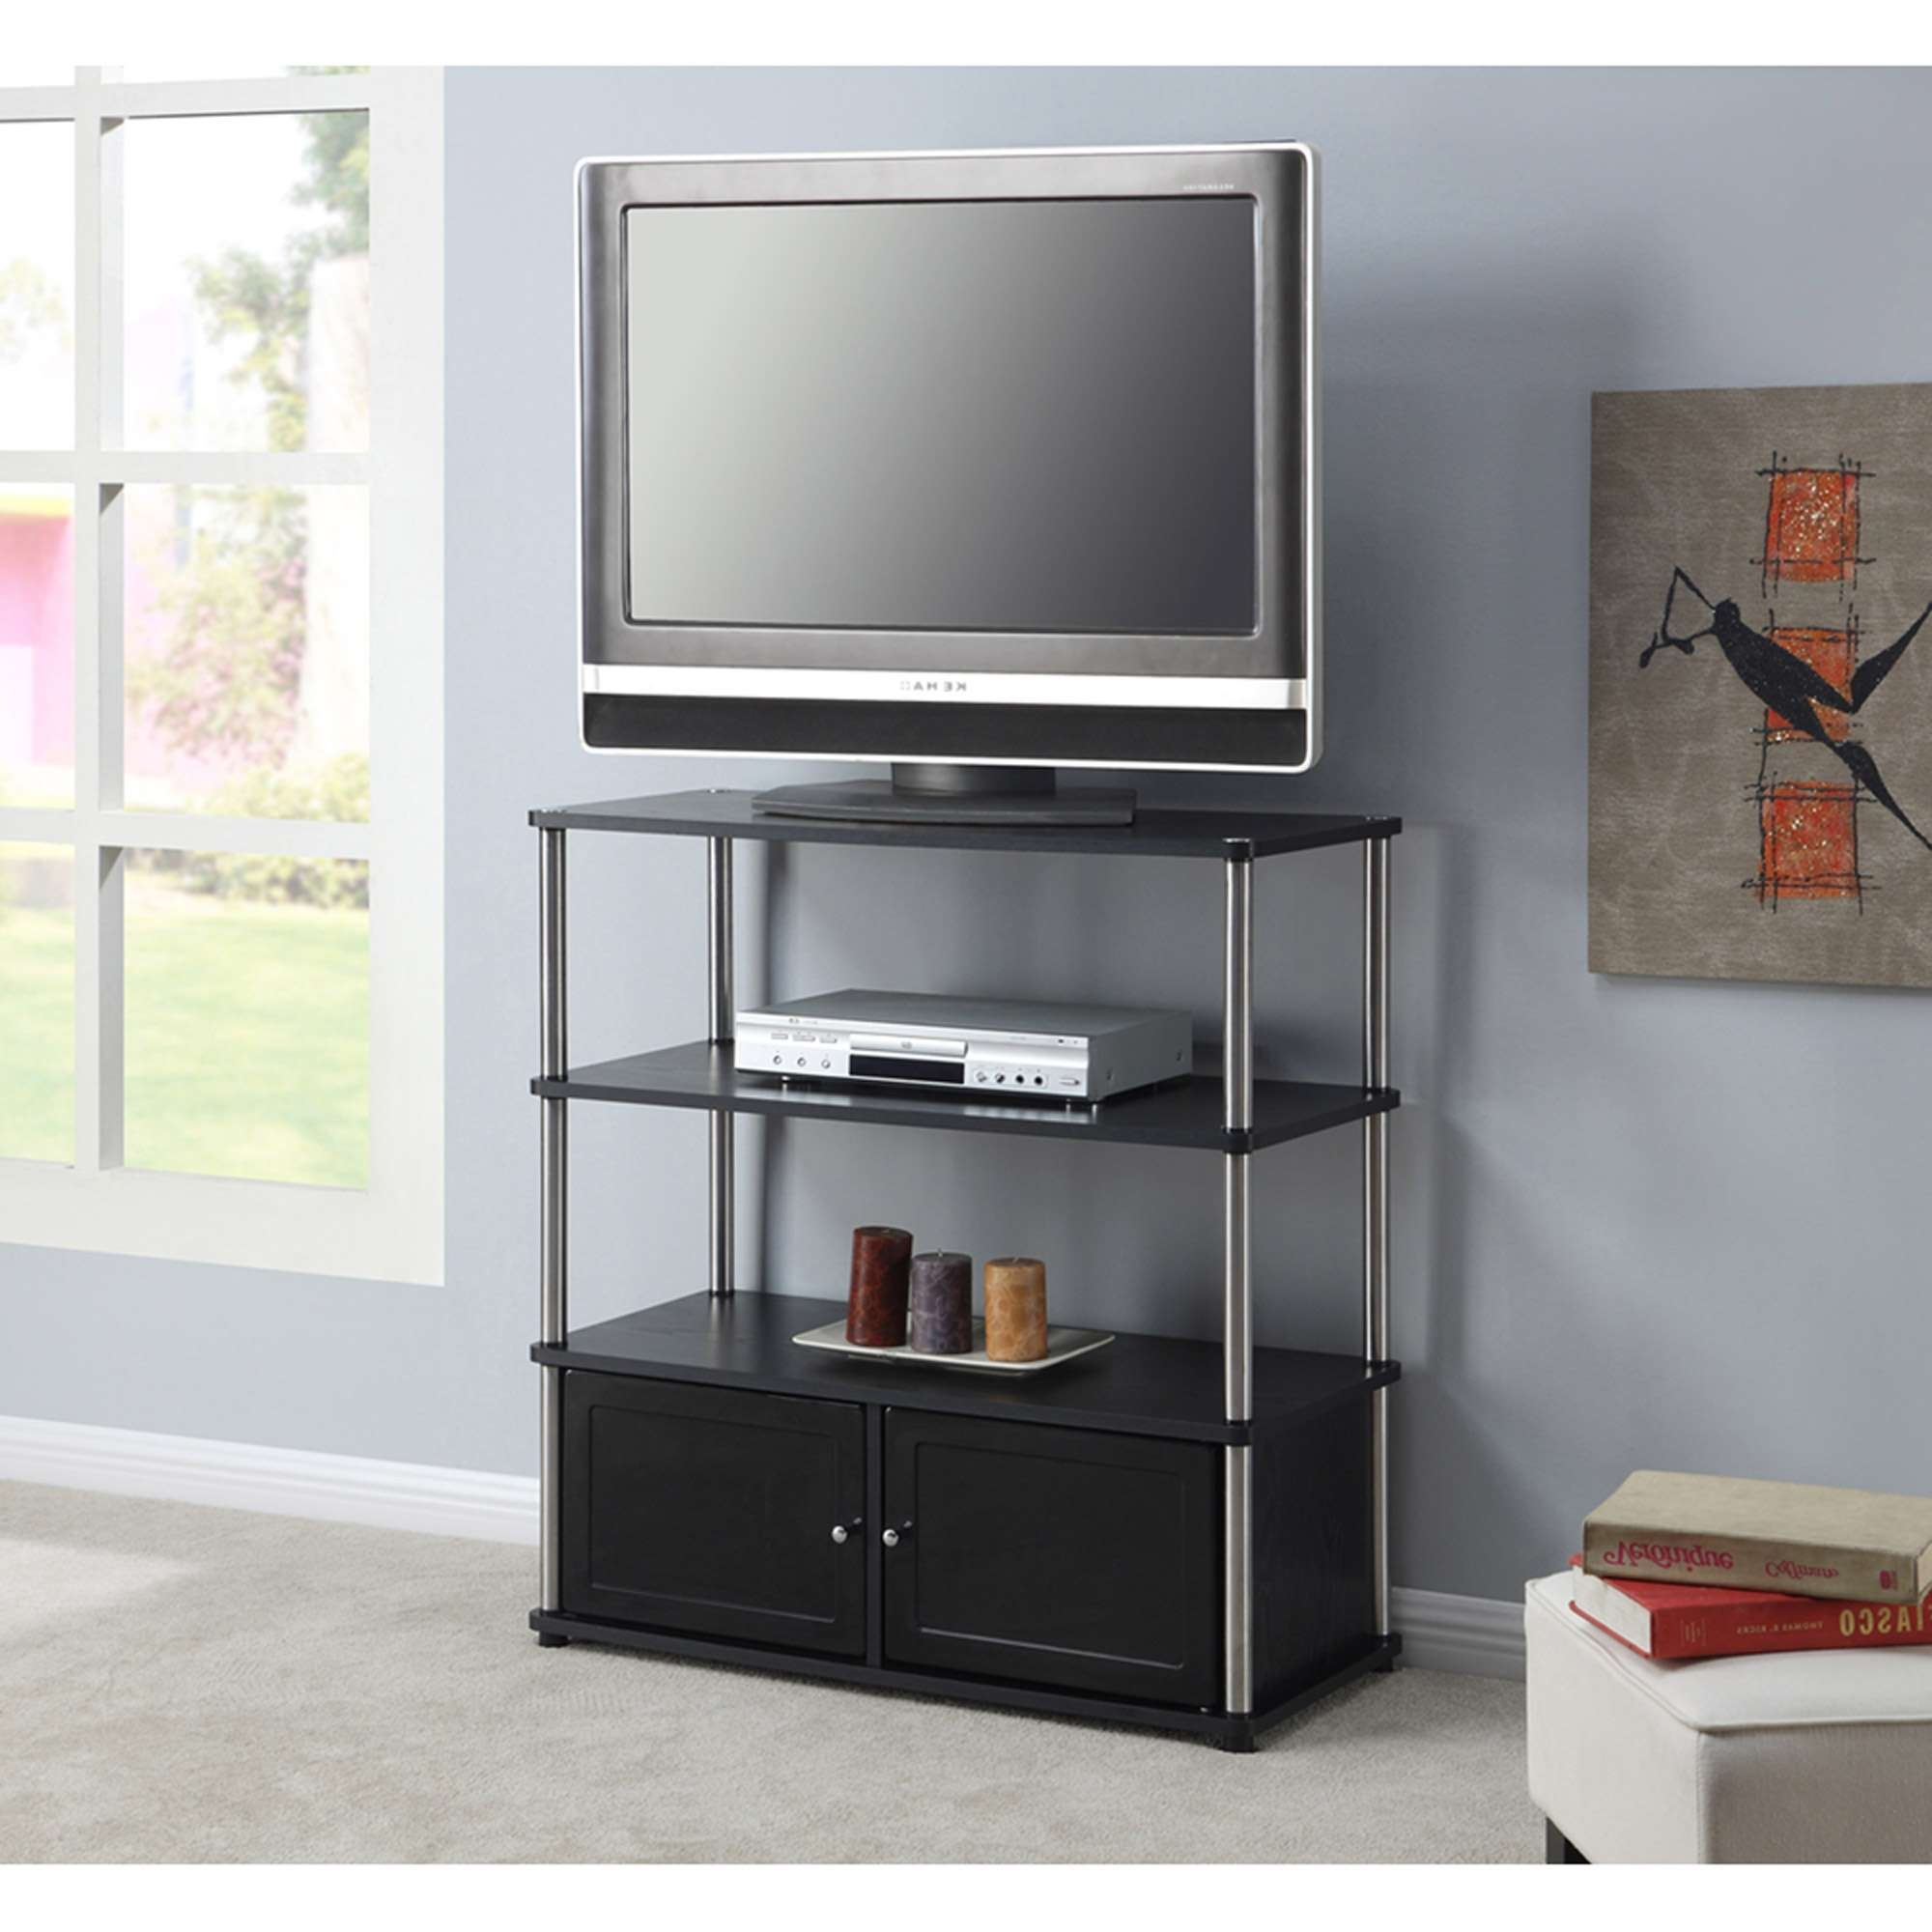 Tall Tv Stand Intended For Very Tall Tv Stands (View 2 of 15)